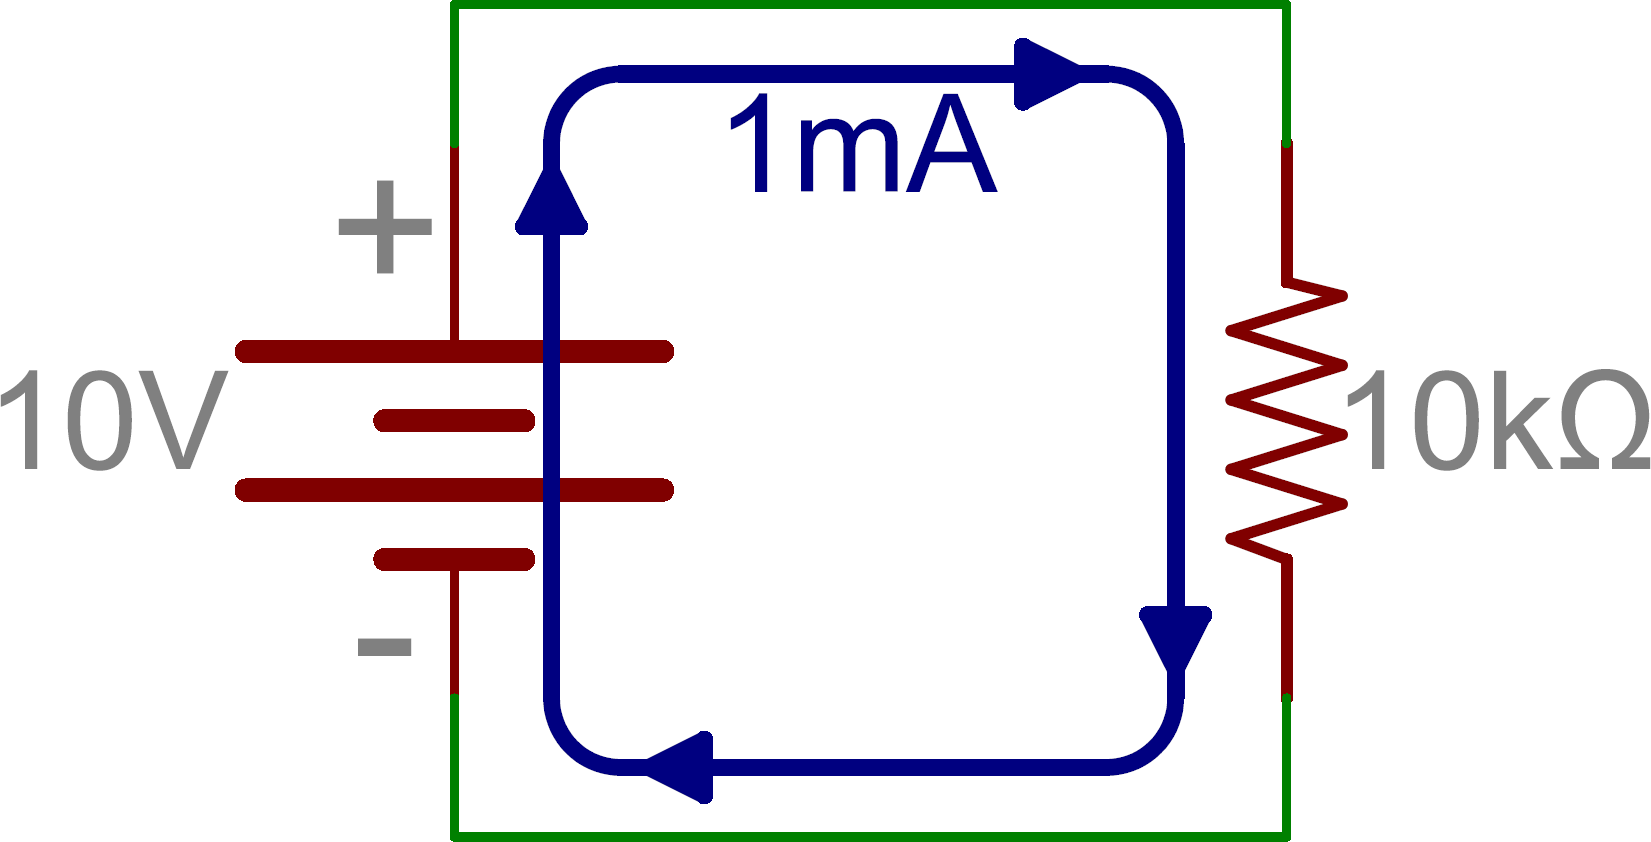 Series And Parallel Circuits Its Very Simple Just Follow The Diagram That I Attached Schematic Single Resistor In With Battery